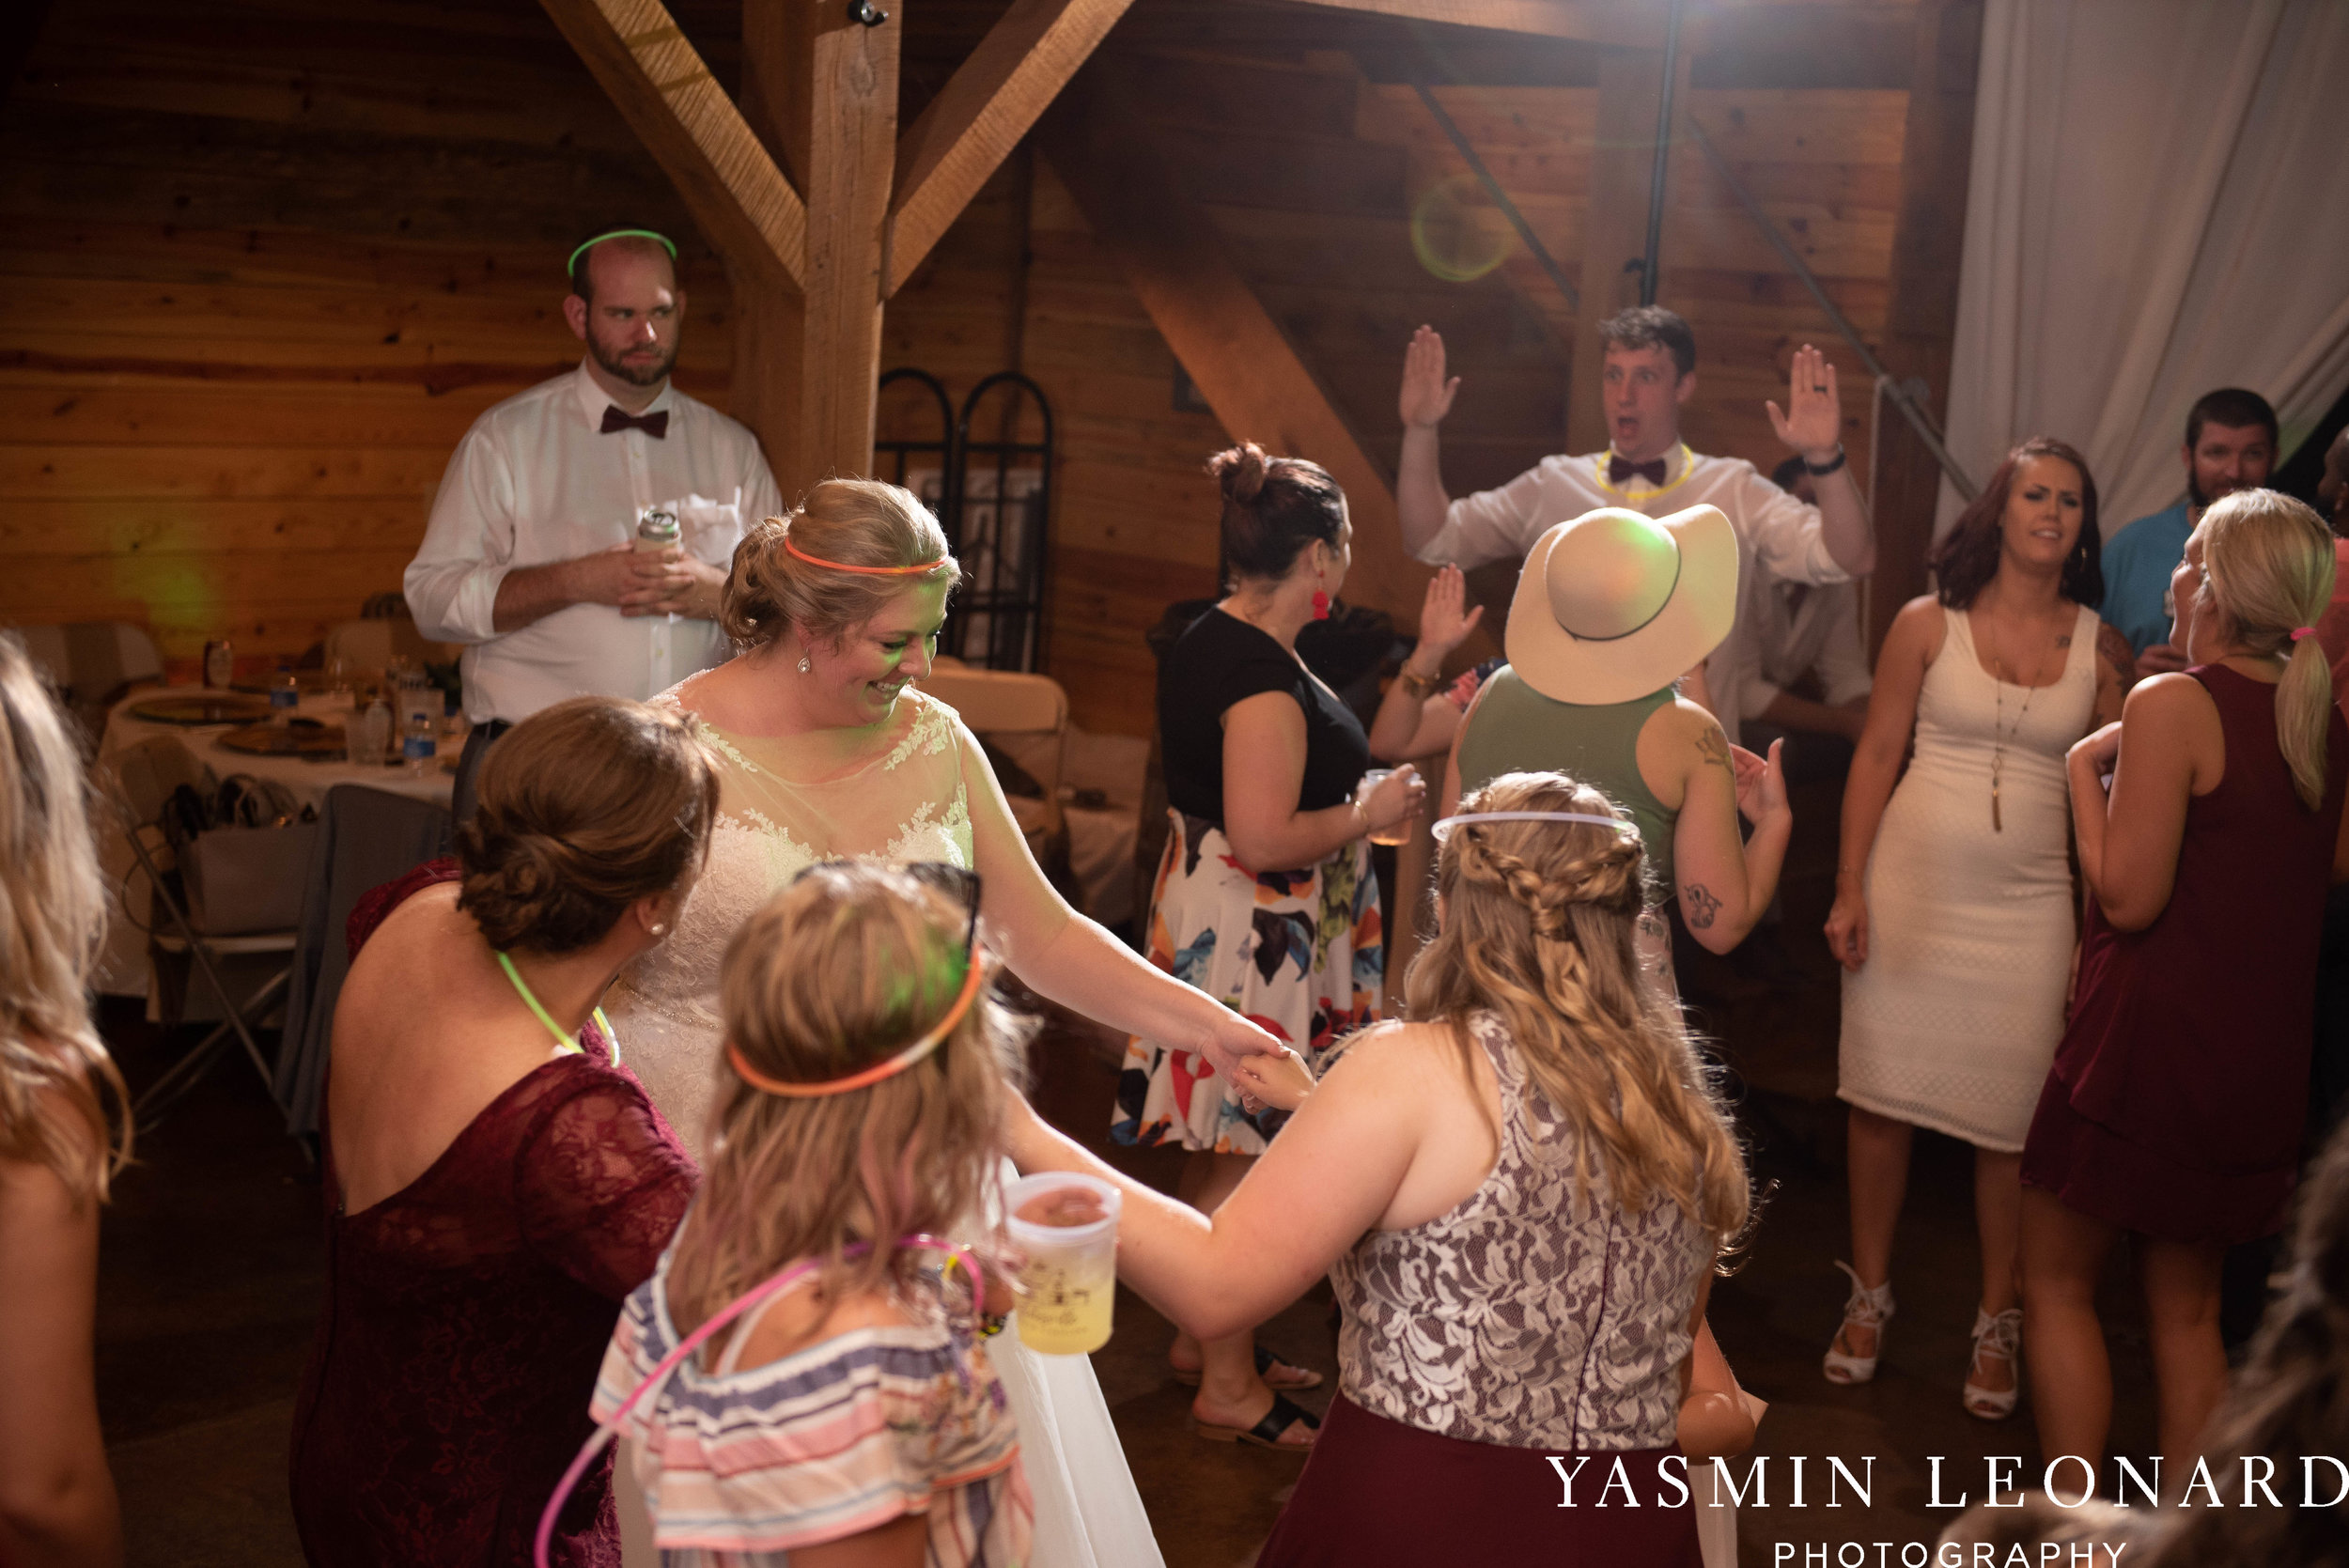 Danner Farms - NC Wedding Venues - NC Barns - Statesville NC - NC Wedding Photographer - High Point Wedding Photographer - Yasmin Leonard Photography-98.jpg